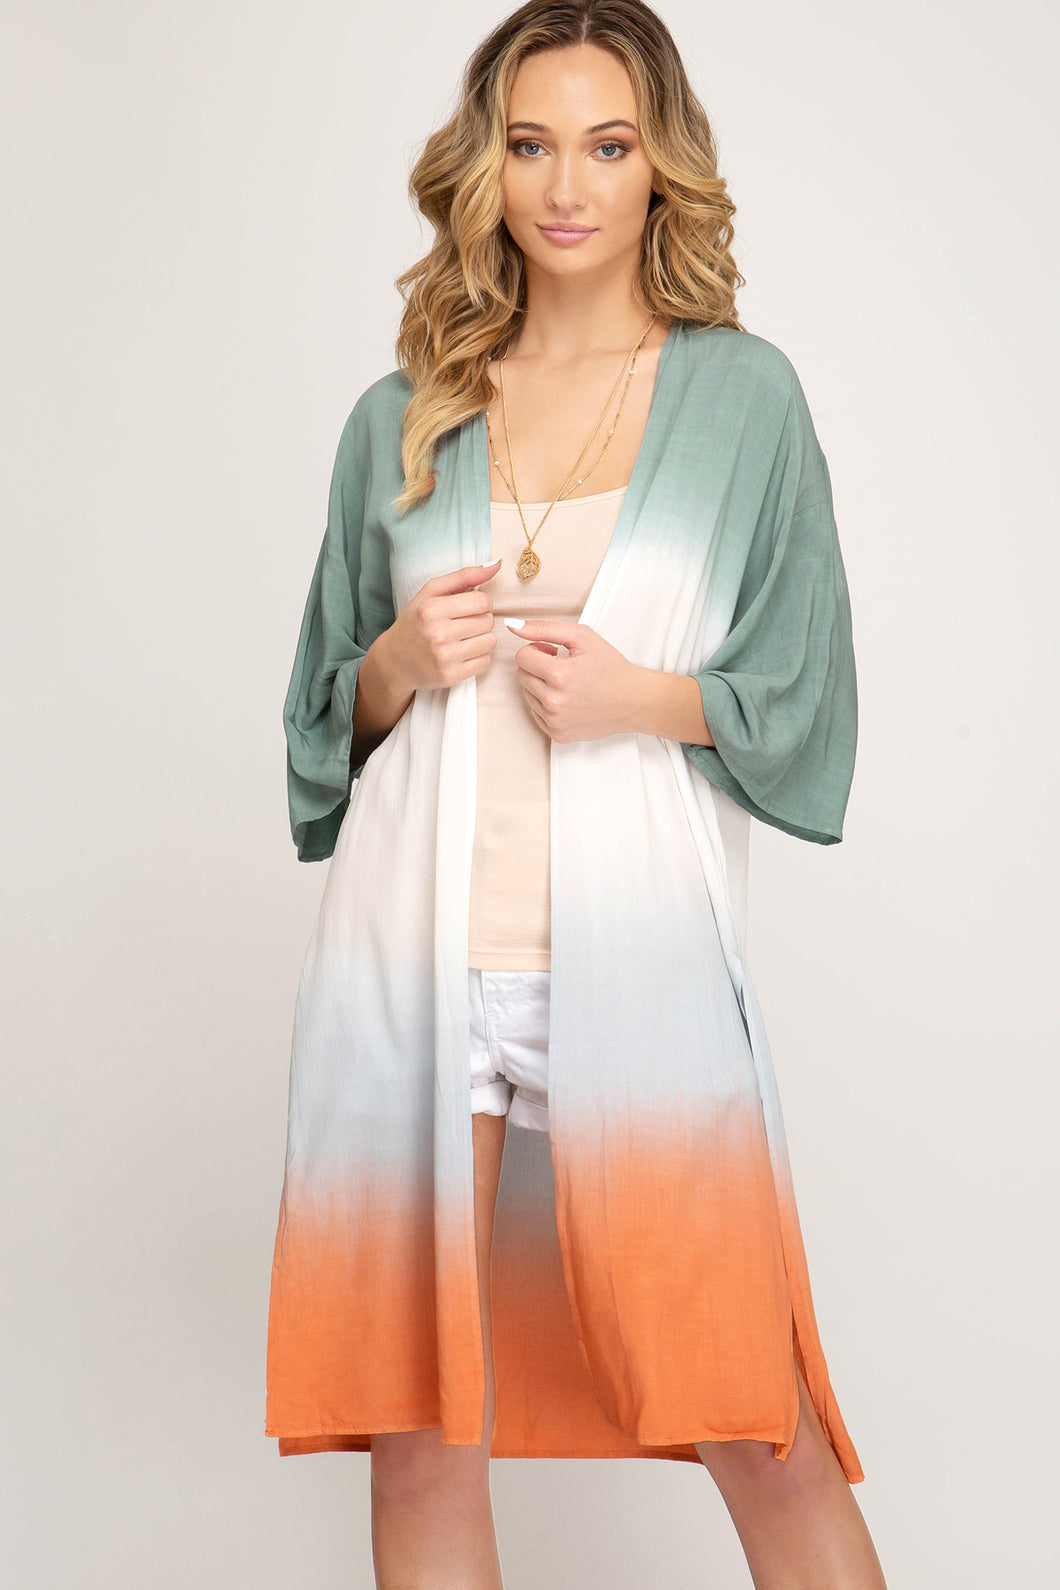 SLATED GREEN AND ORANGE CARDIGAN